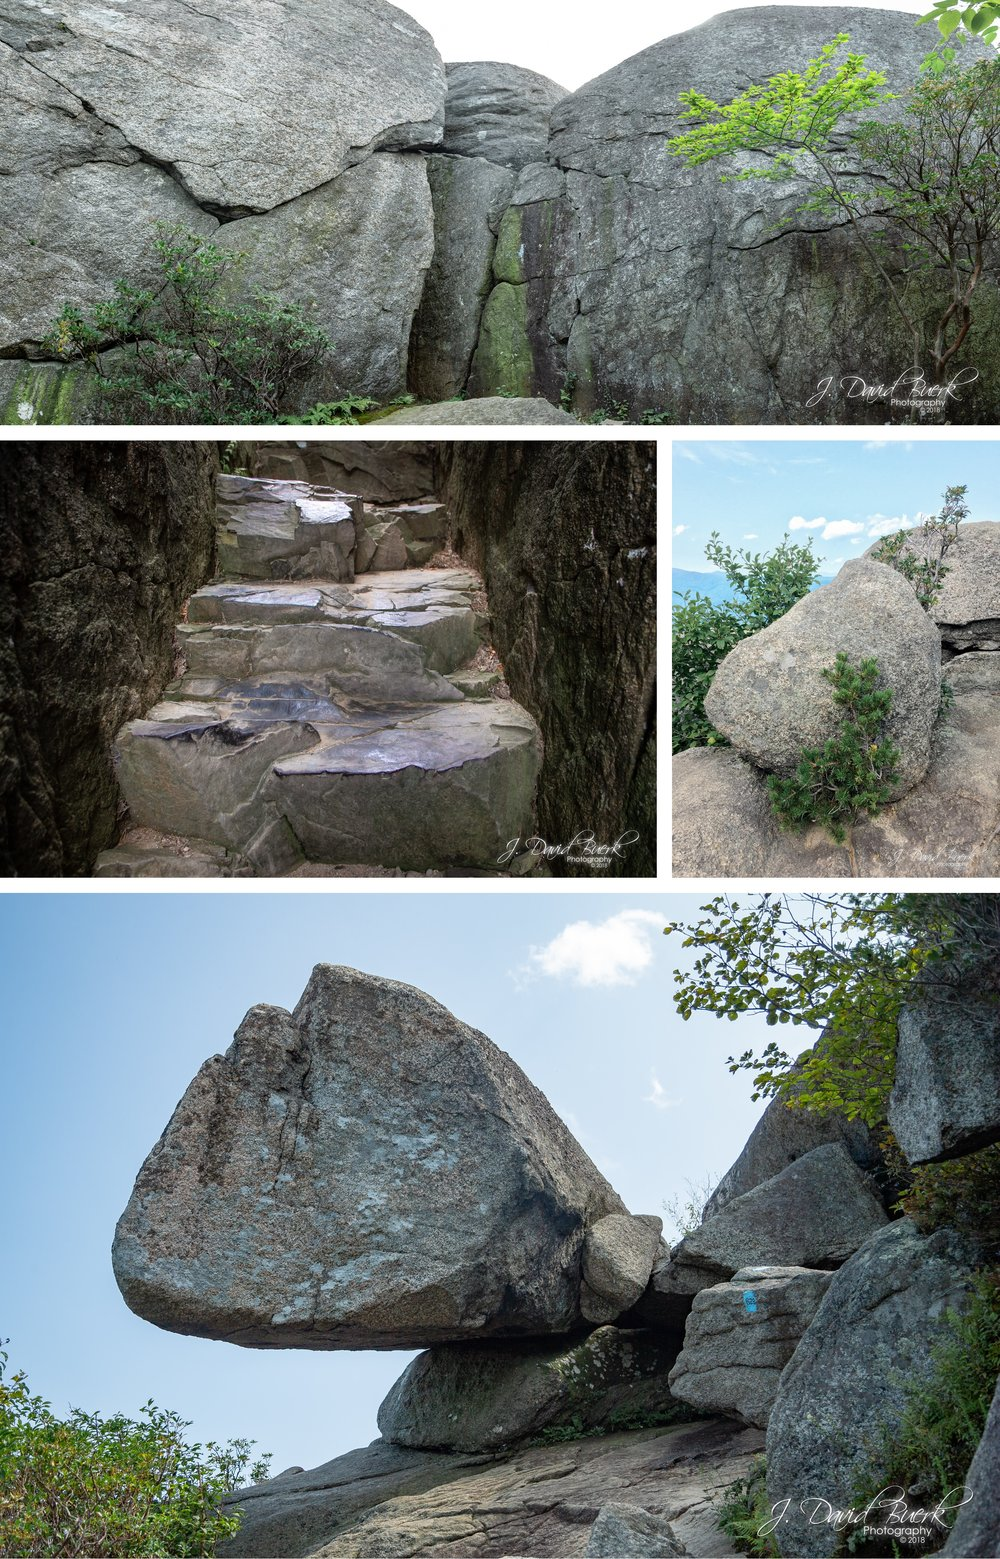 20180826 - Old Rag Mountain August 2018 5.jpg